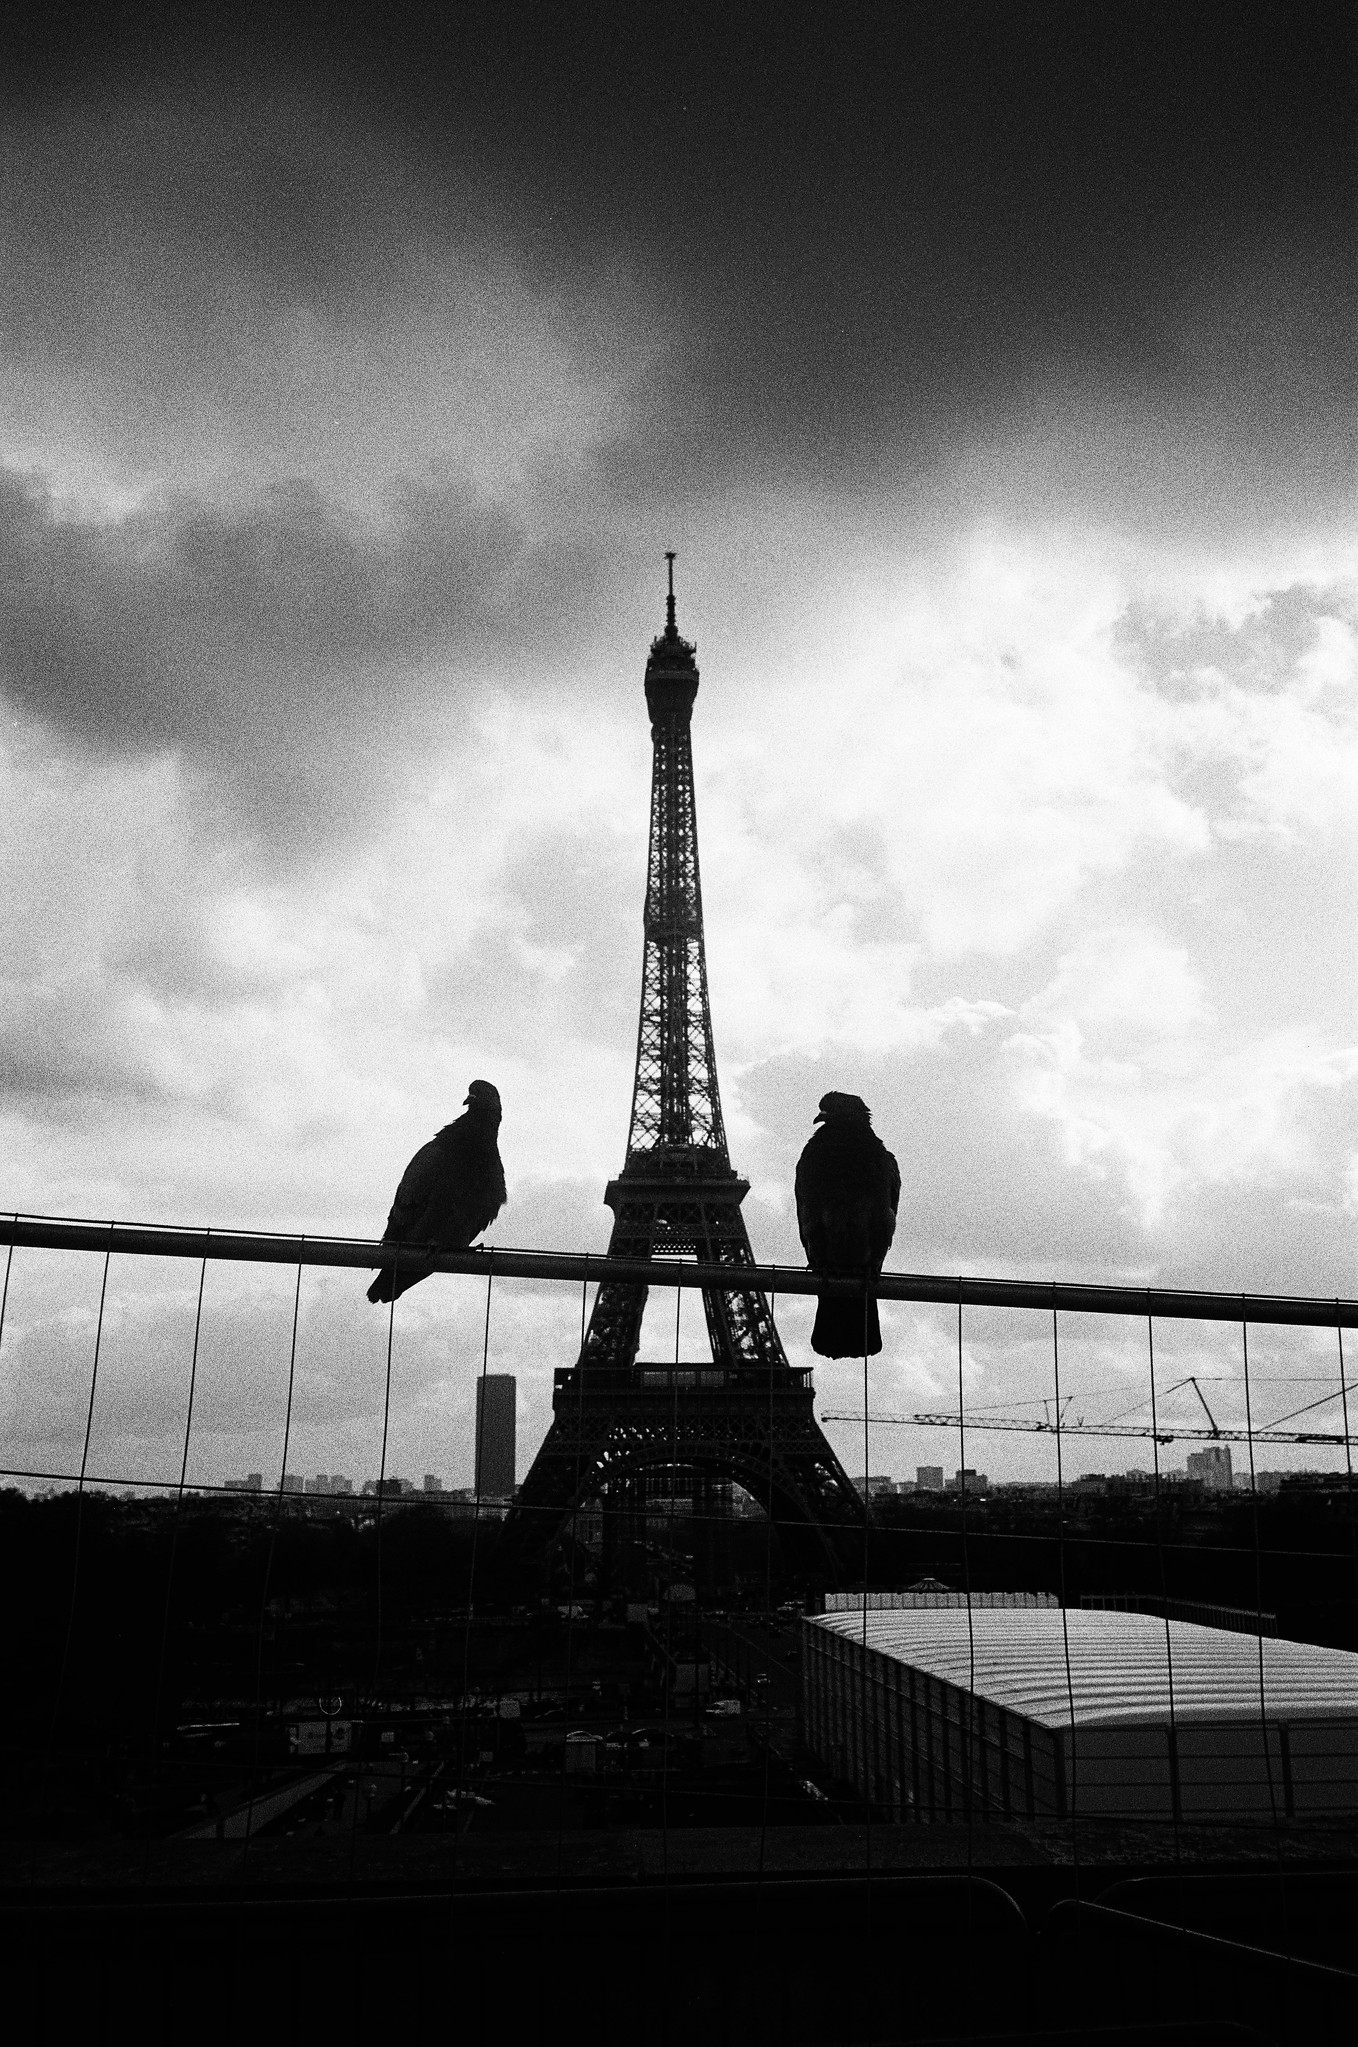 Pigeons and The Eiffel Tower